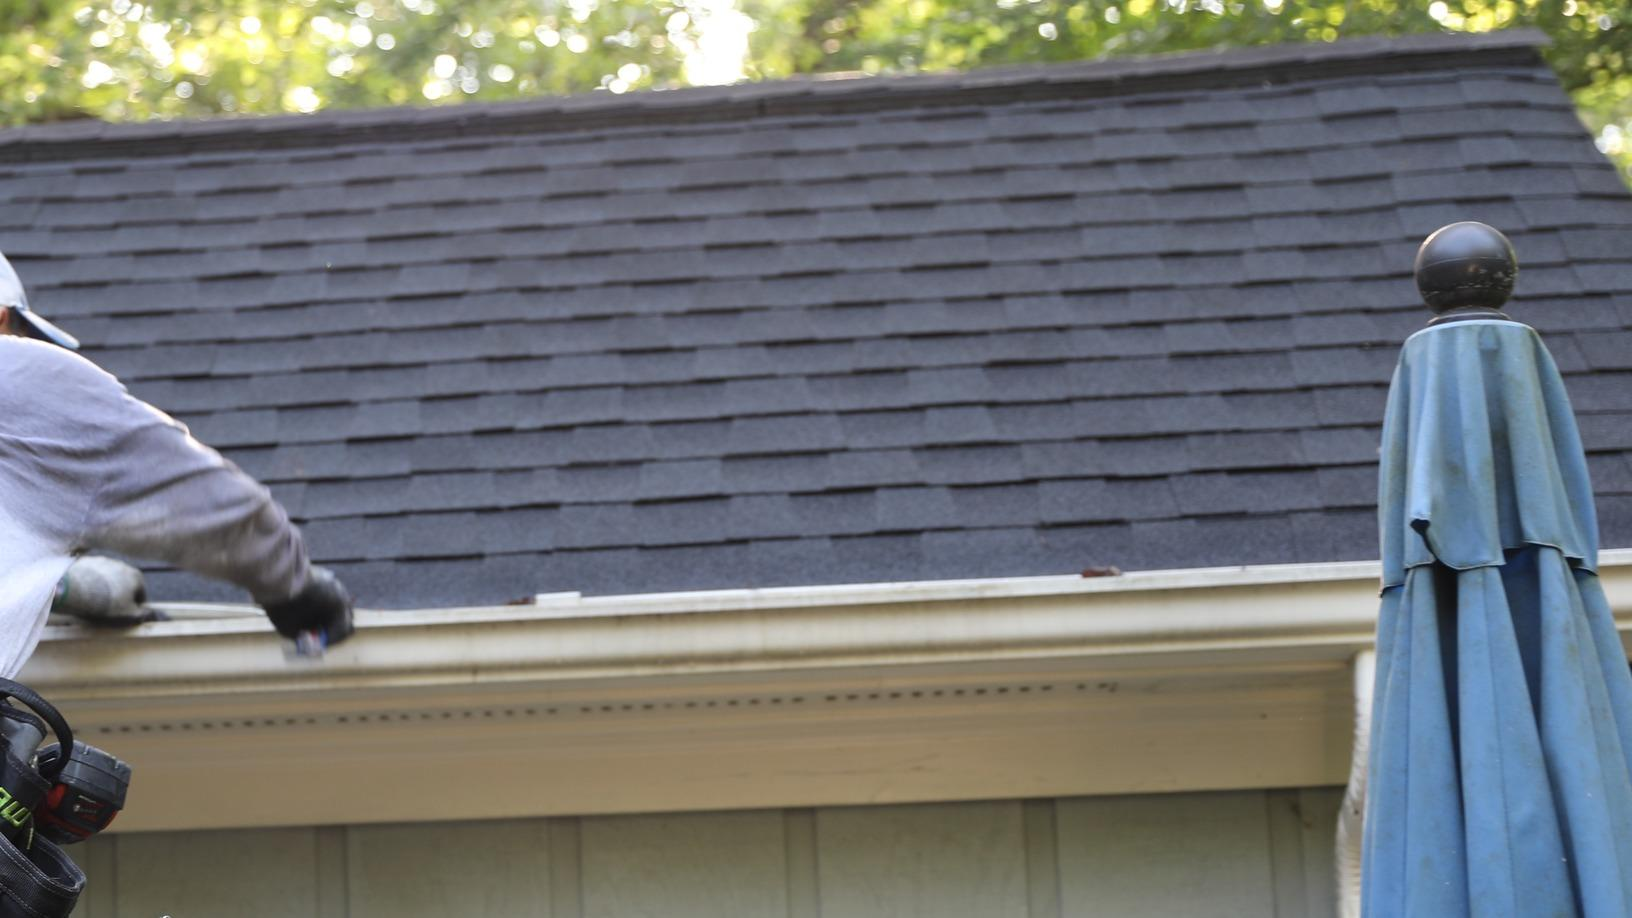 Midlands SC Gutter and Downspout Replacement - Before Photo